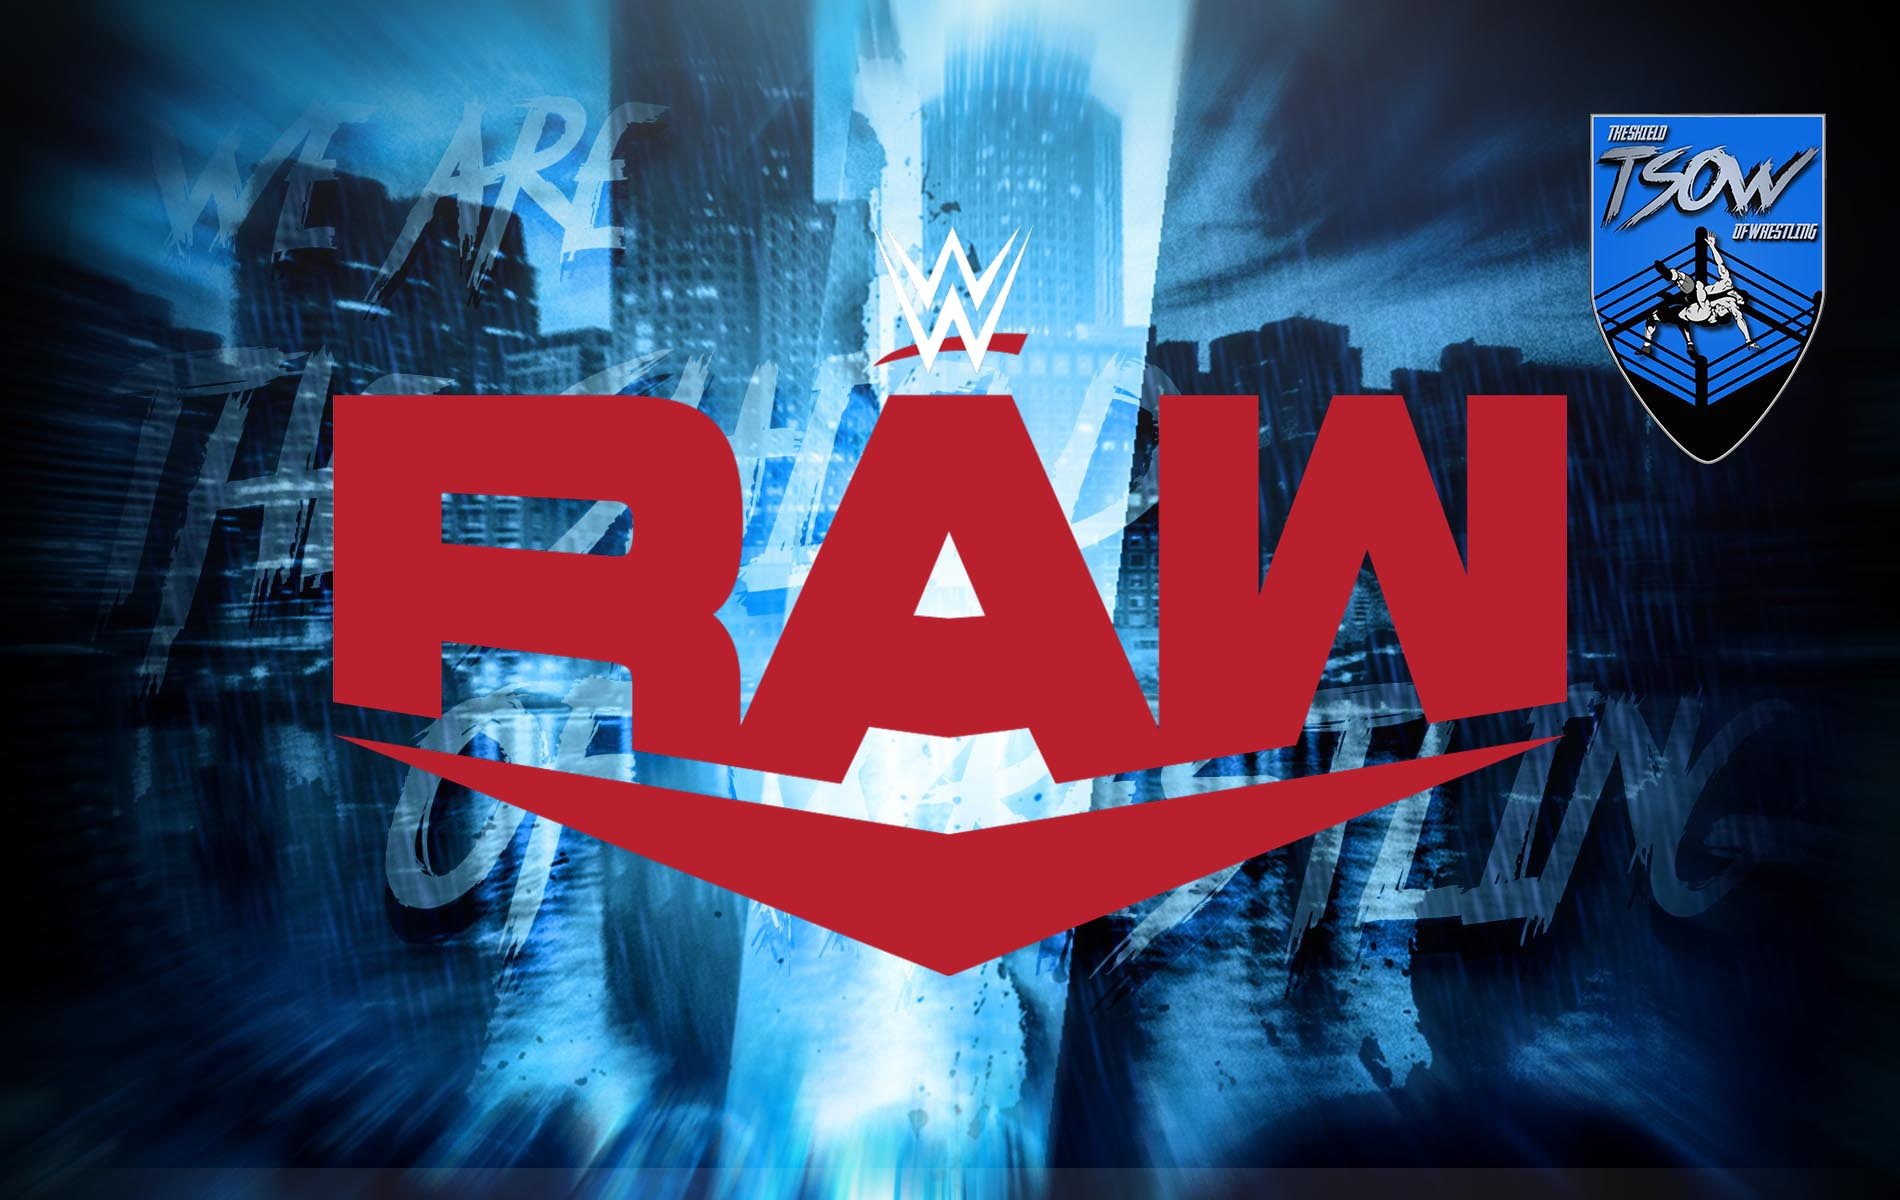 Svelati i primi tre membri del Team RAW maschile a Survivor Series